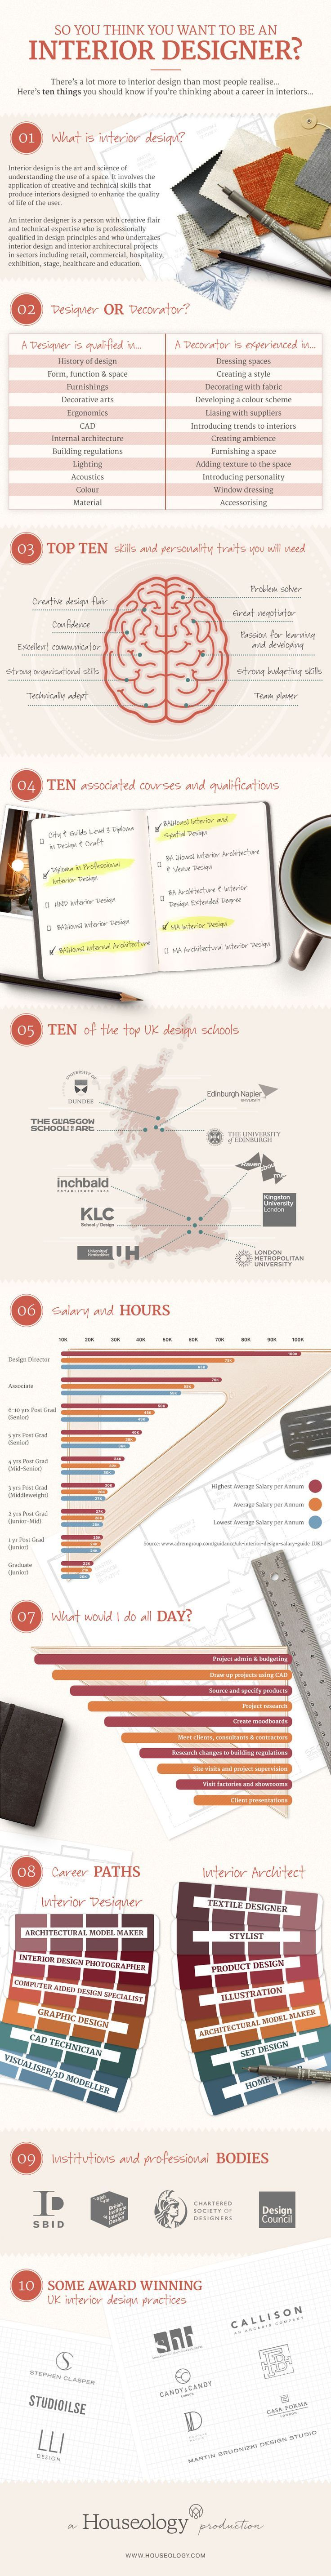 Business Infographic Want To Be An Interior Designer Your Number